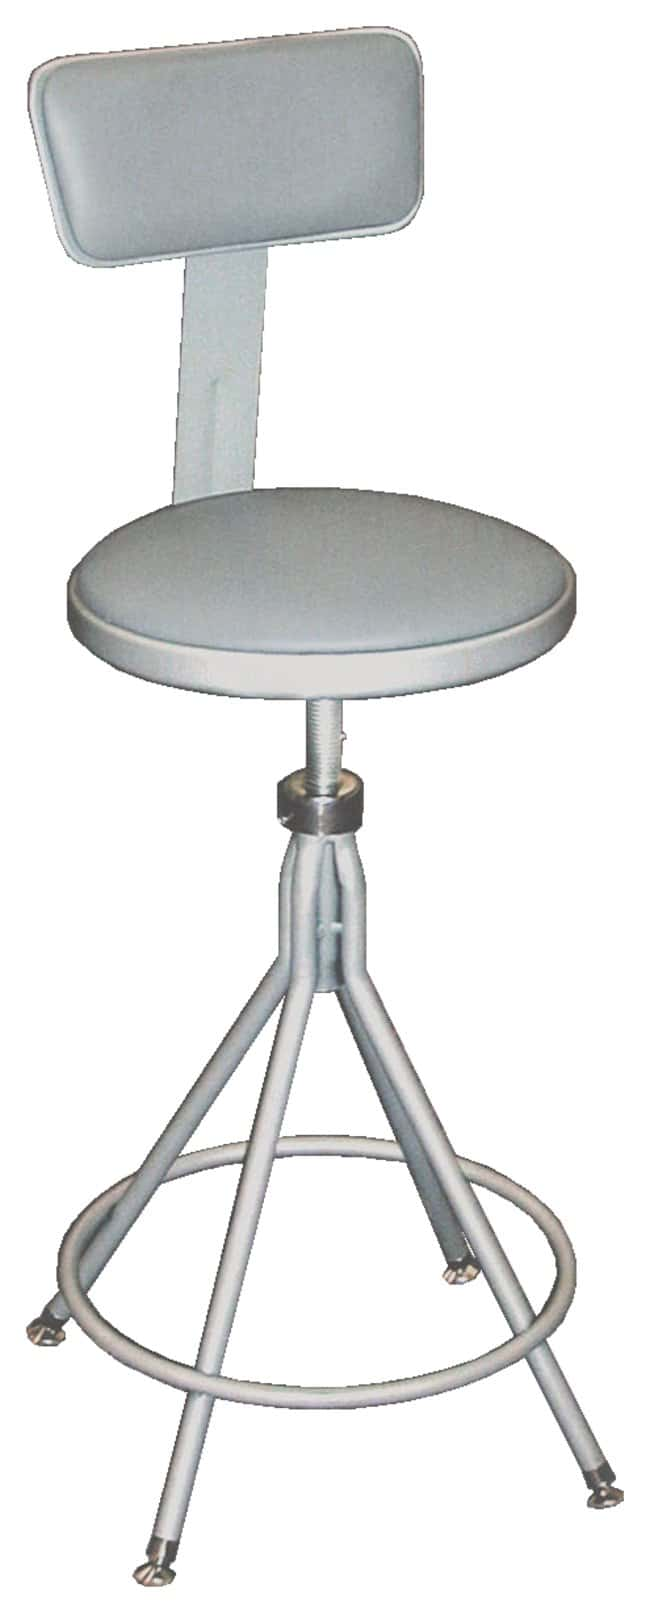 National Public Seating Heavy-Duty Padded Stools :Furniture, Storage, Casework,